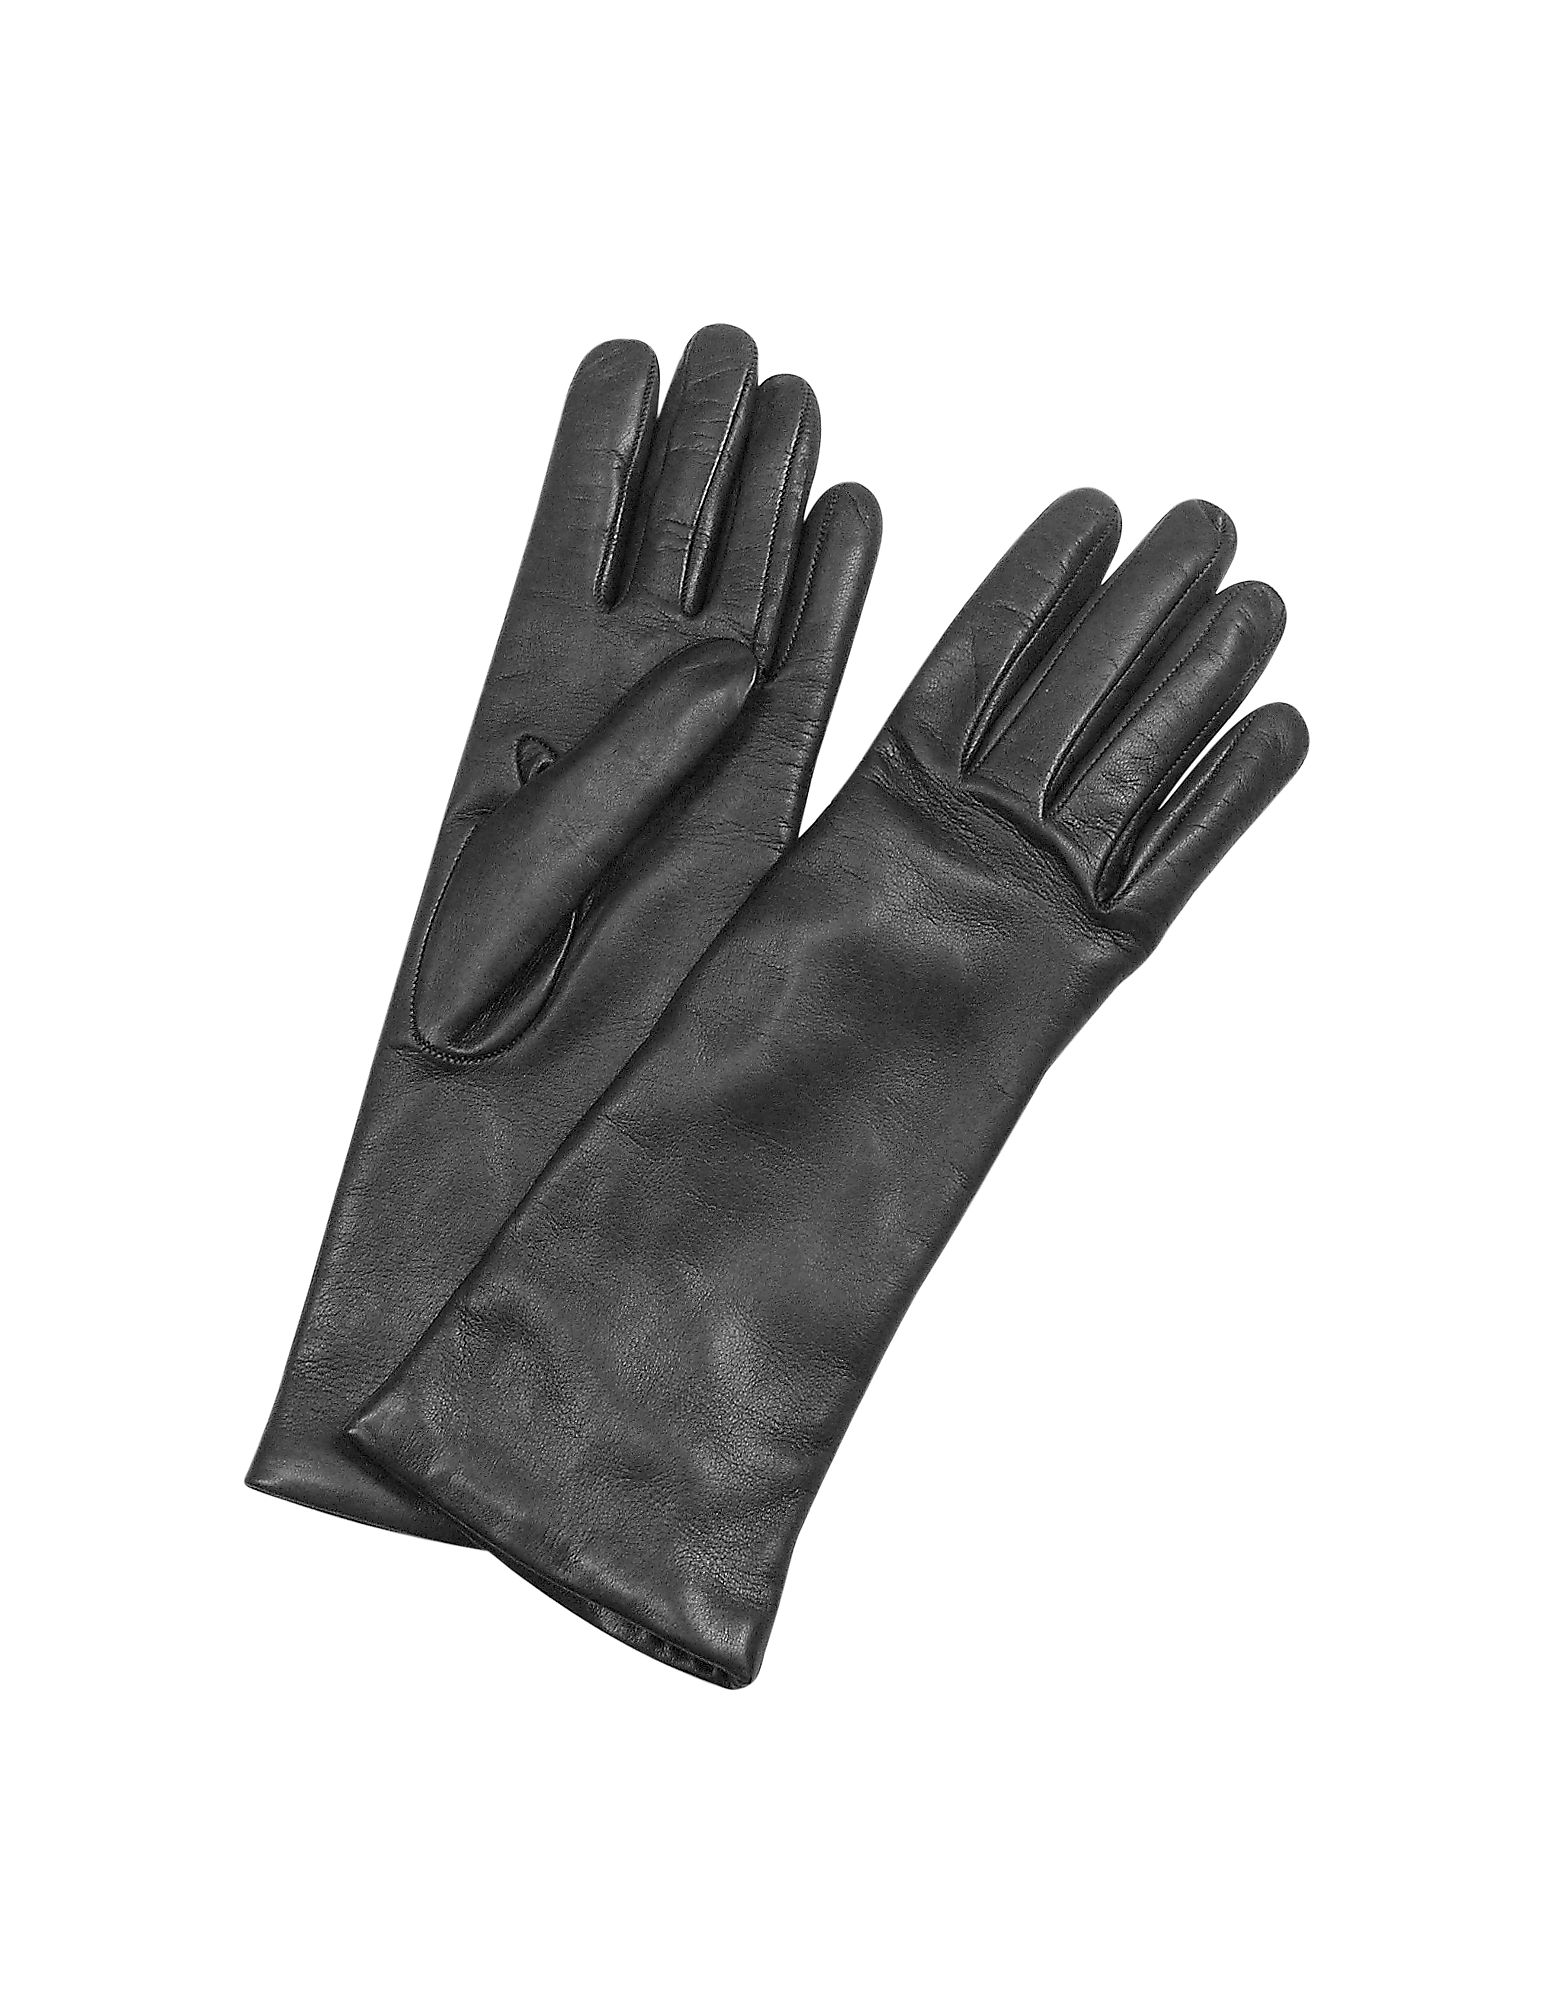 Forzieri Women's Gloves, Women's Cashmere Lined Black Italian Leather Long Gloves